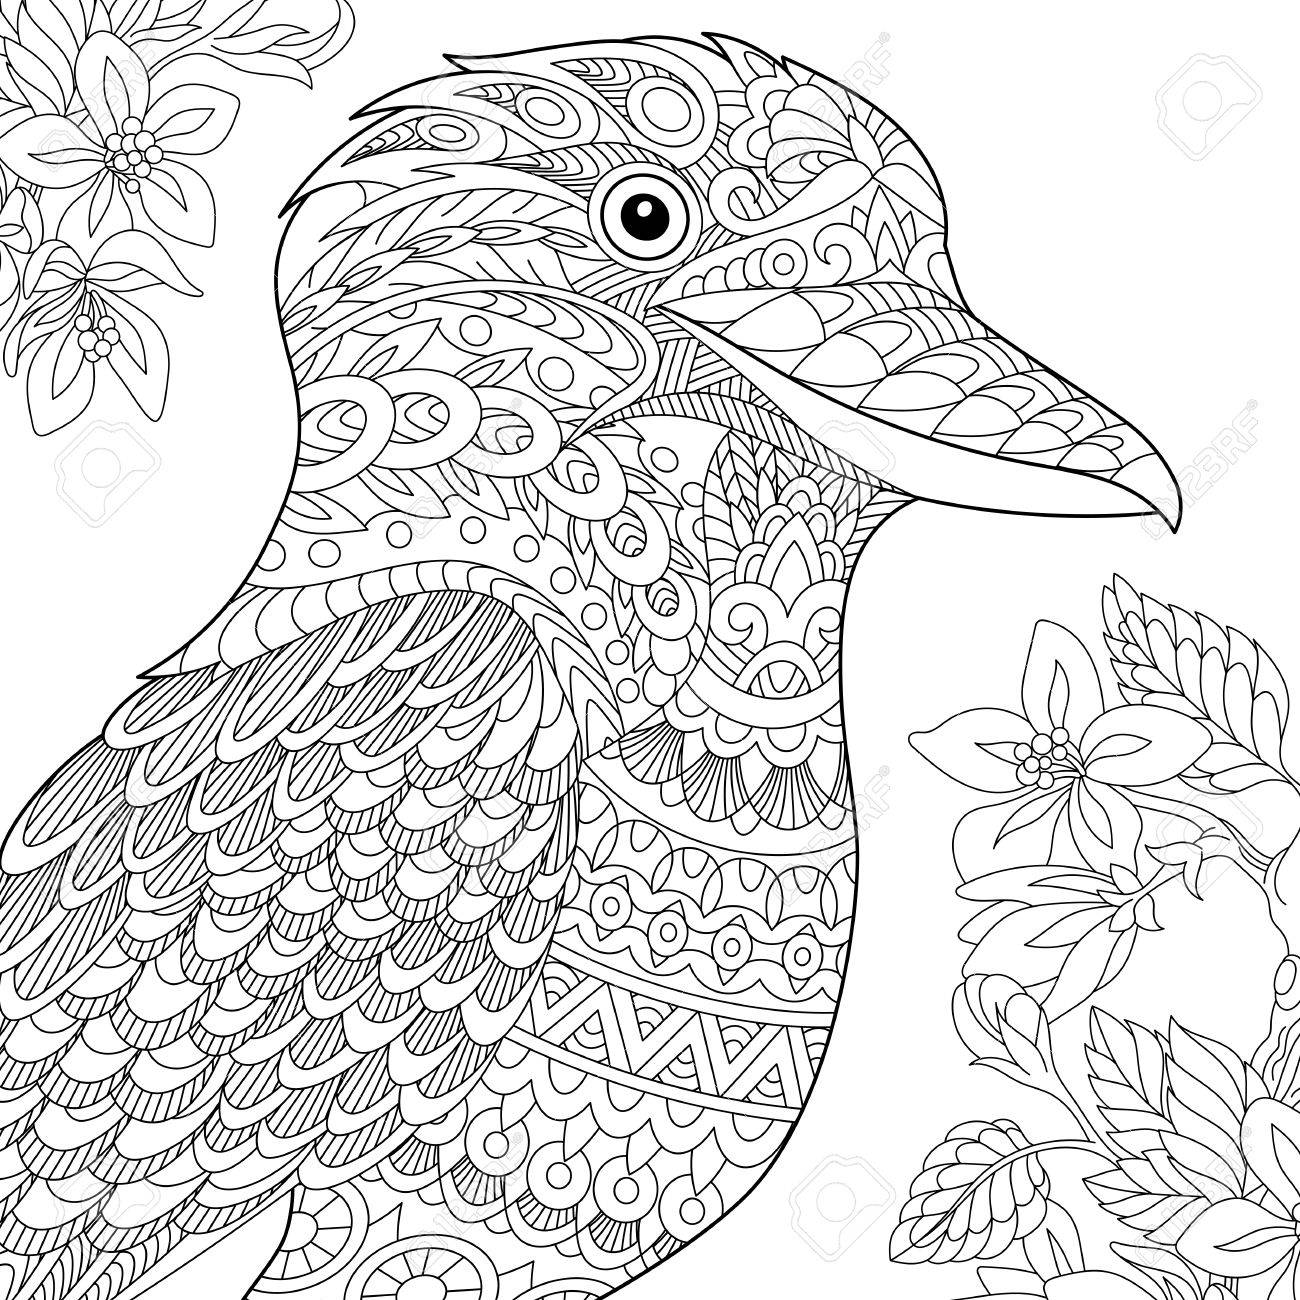 1300x1300 Coloring Page. Australian Kookaburra Bird. Freehand Sketch Drawing